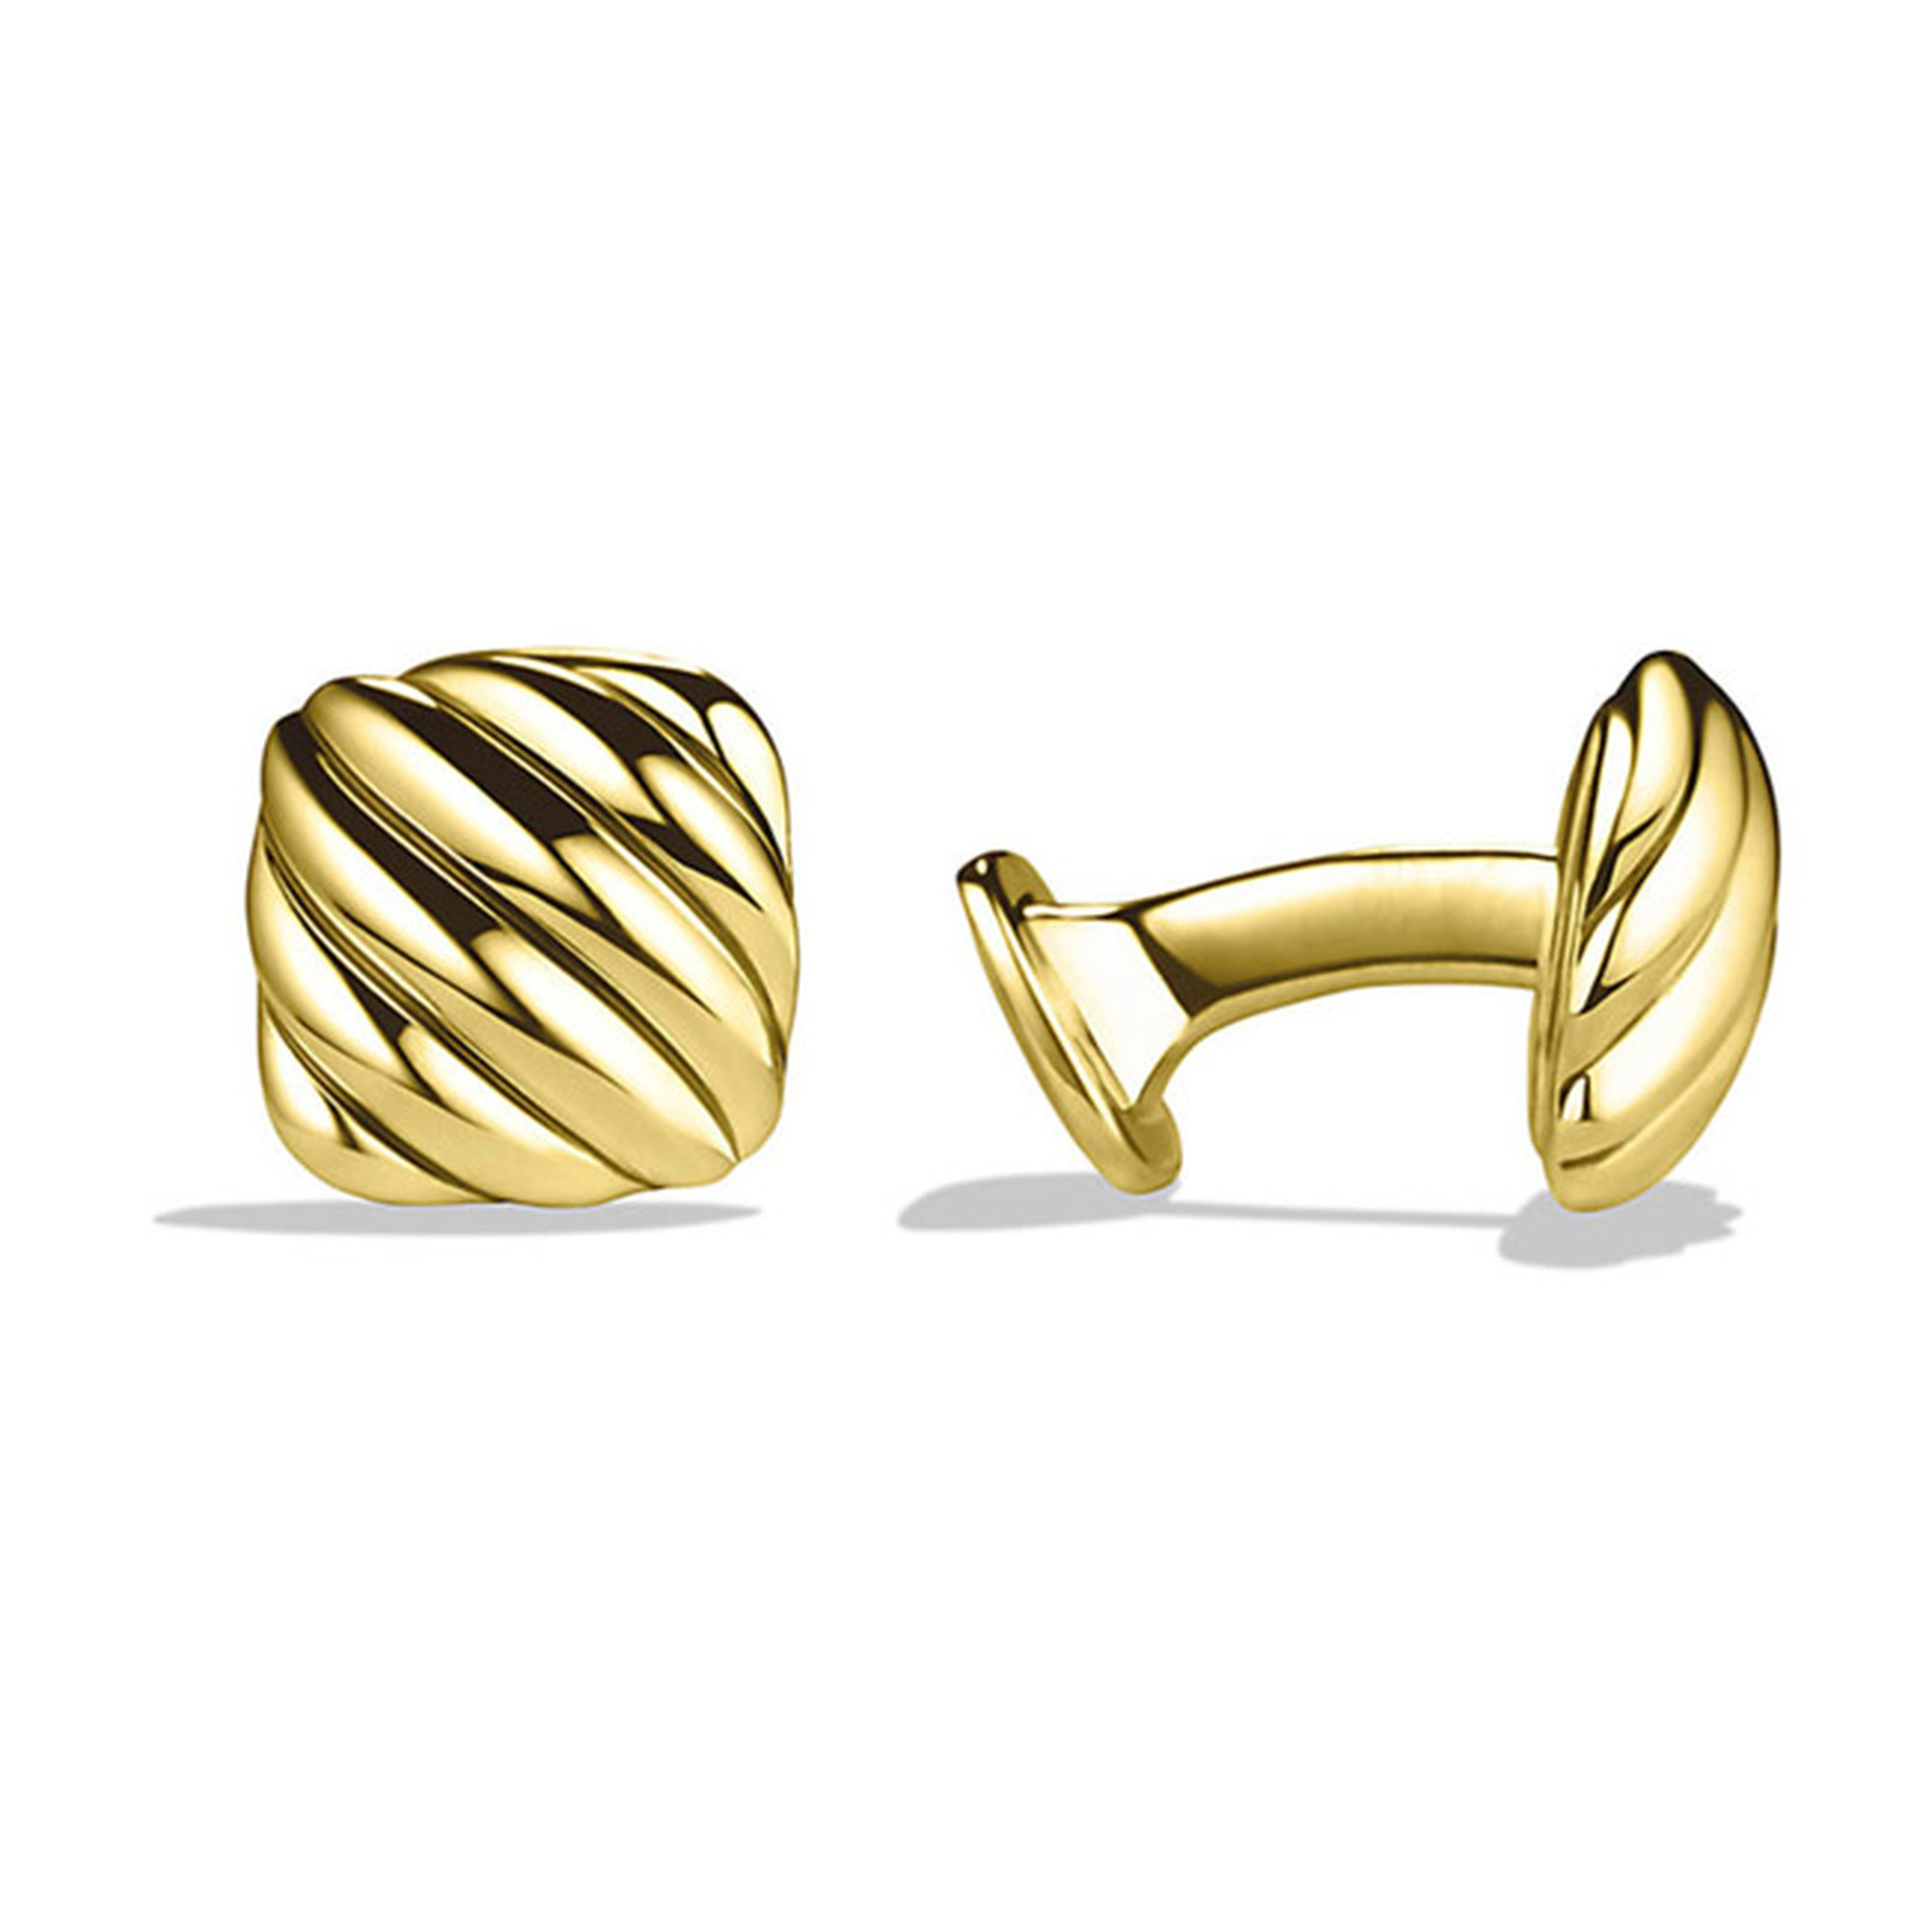 David-Yurman-Cable-Cufflinks-Main